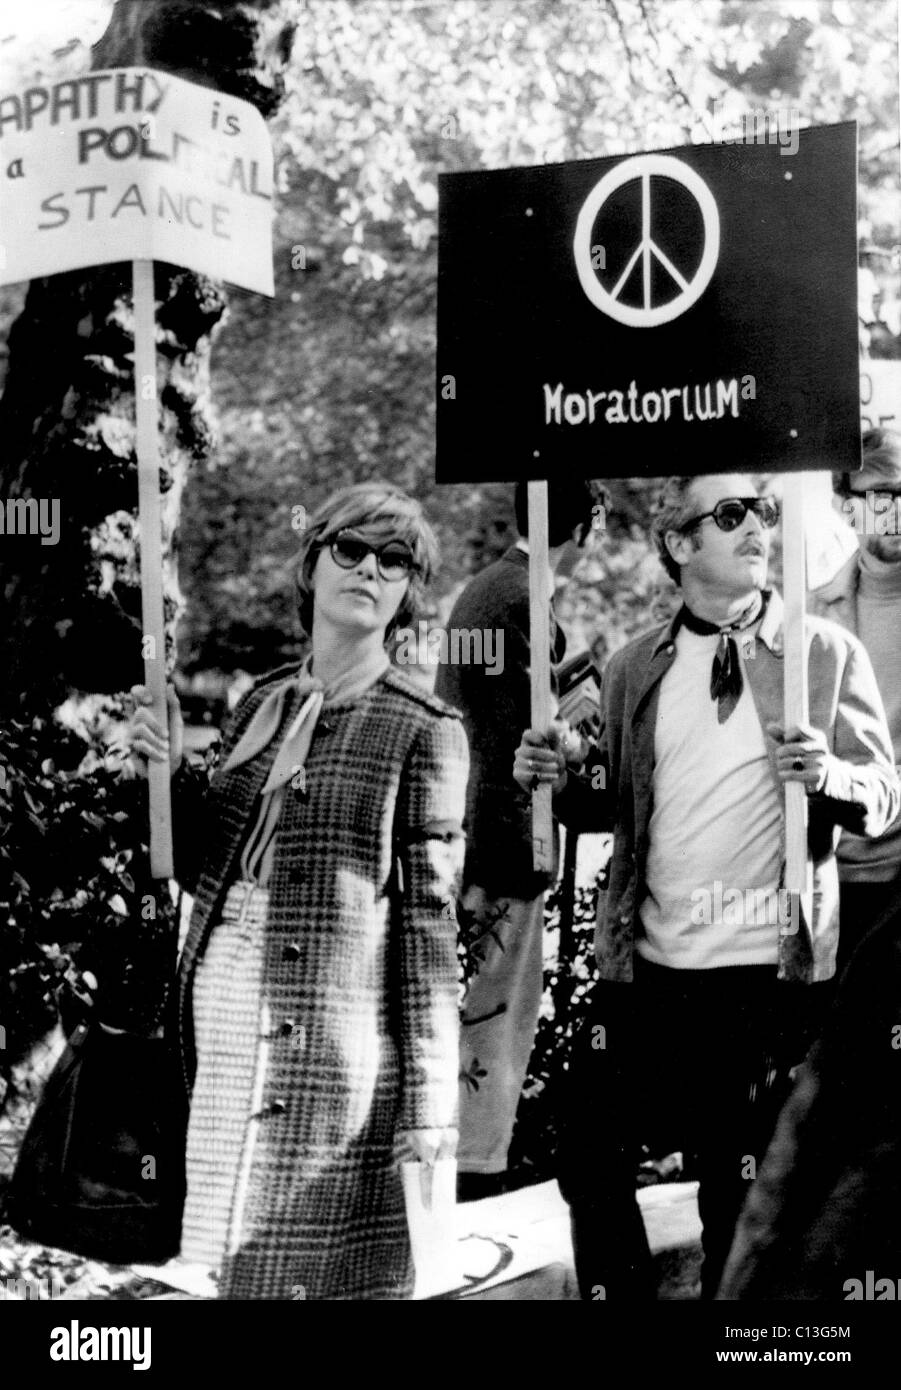 JOANNE WOODWARD and PAUL NEWMAN protest the Vietnam war, 1969 Stock Foto